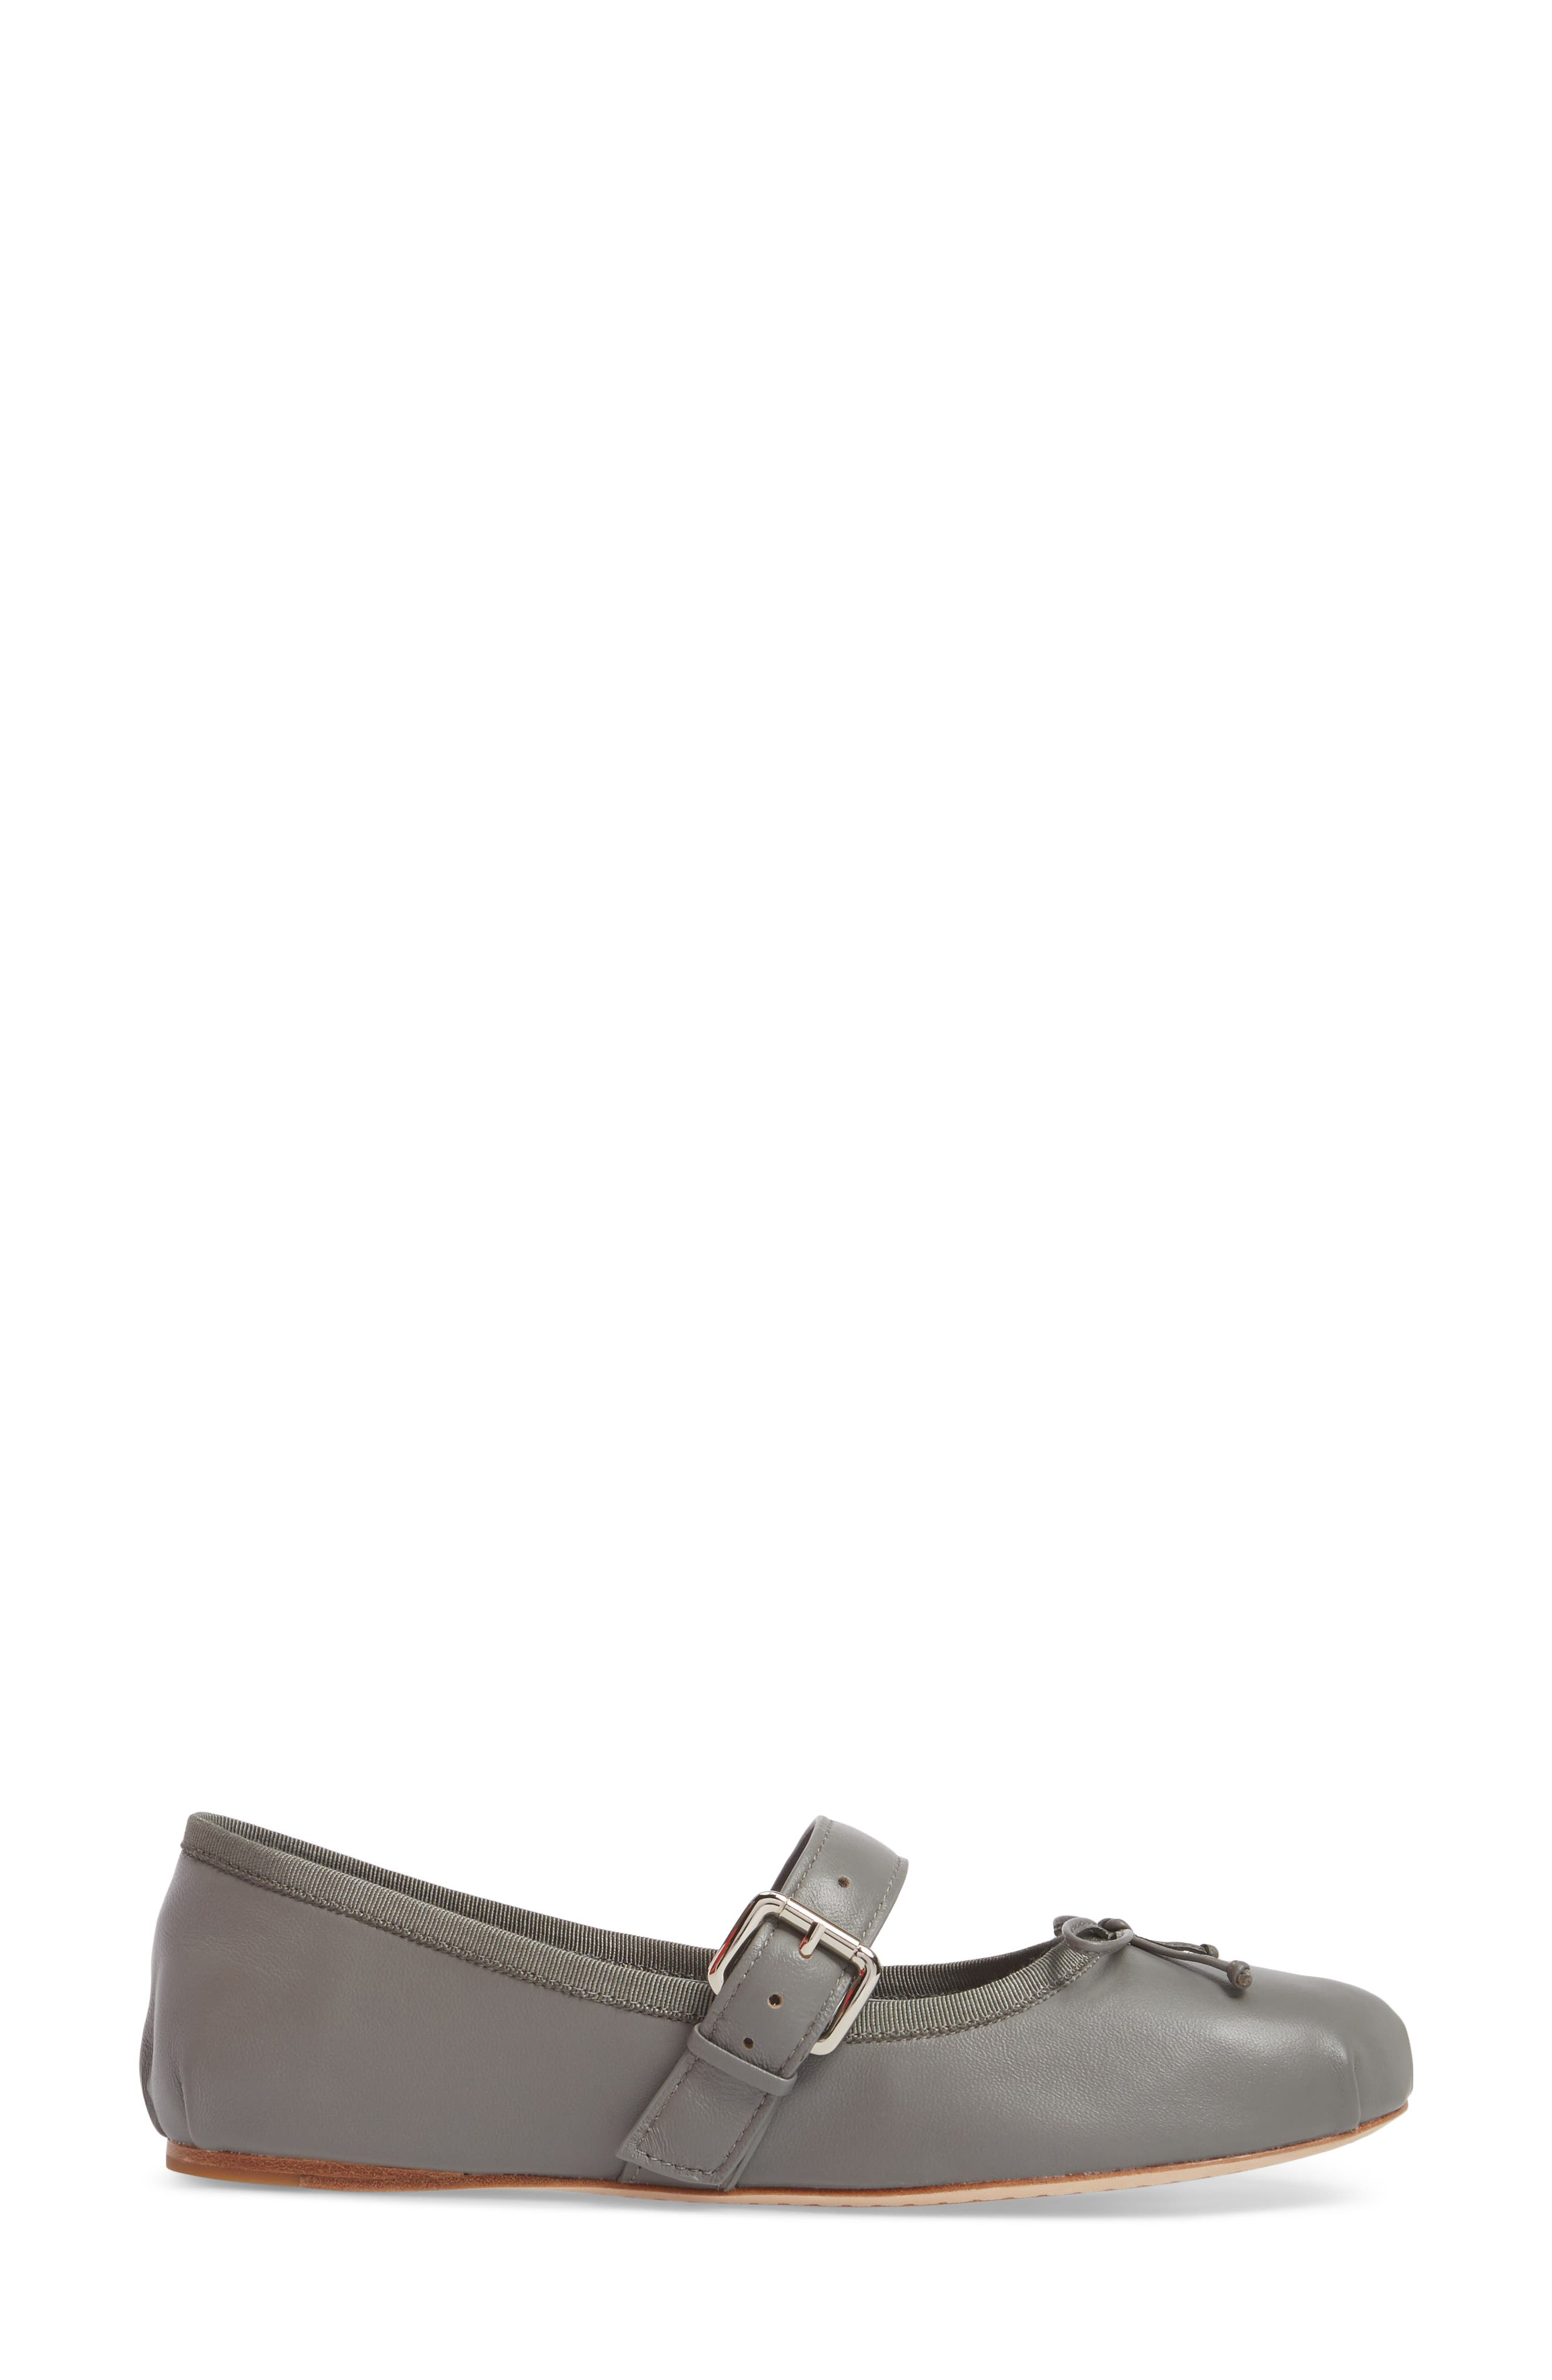 Molly Mary Jane Flat,                             Alternate thumbnail 3, color,                             GREY LEATHER